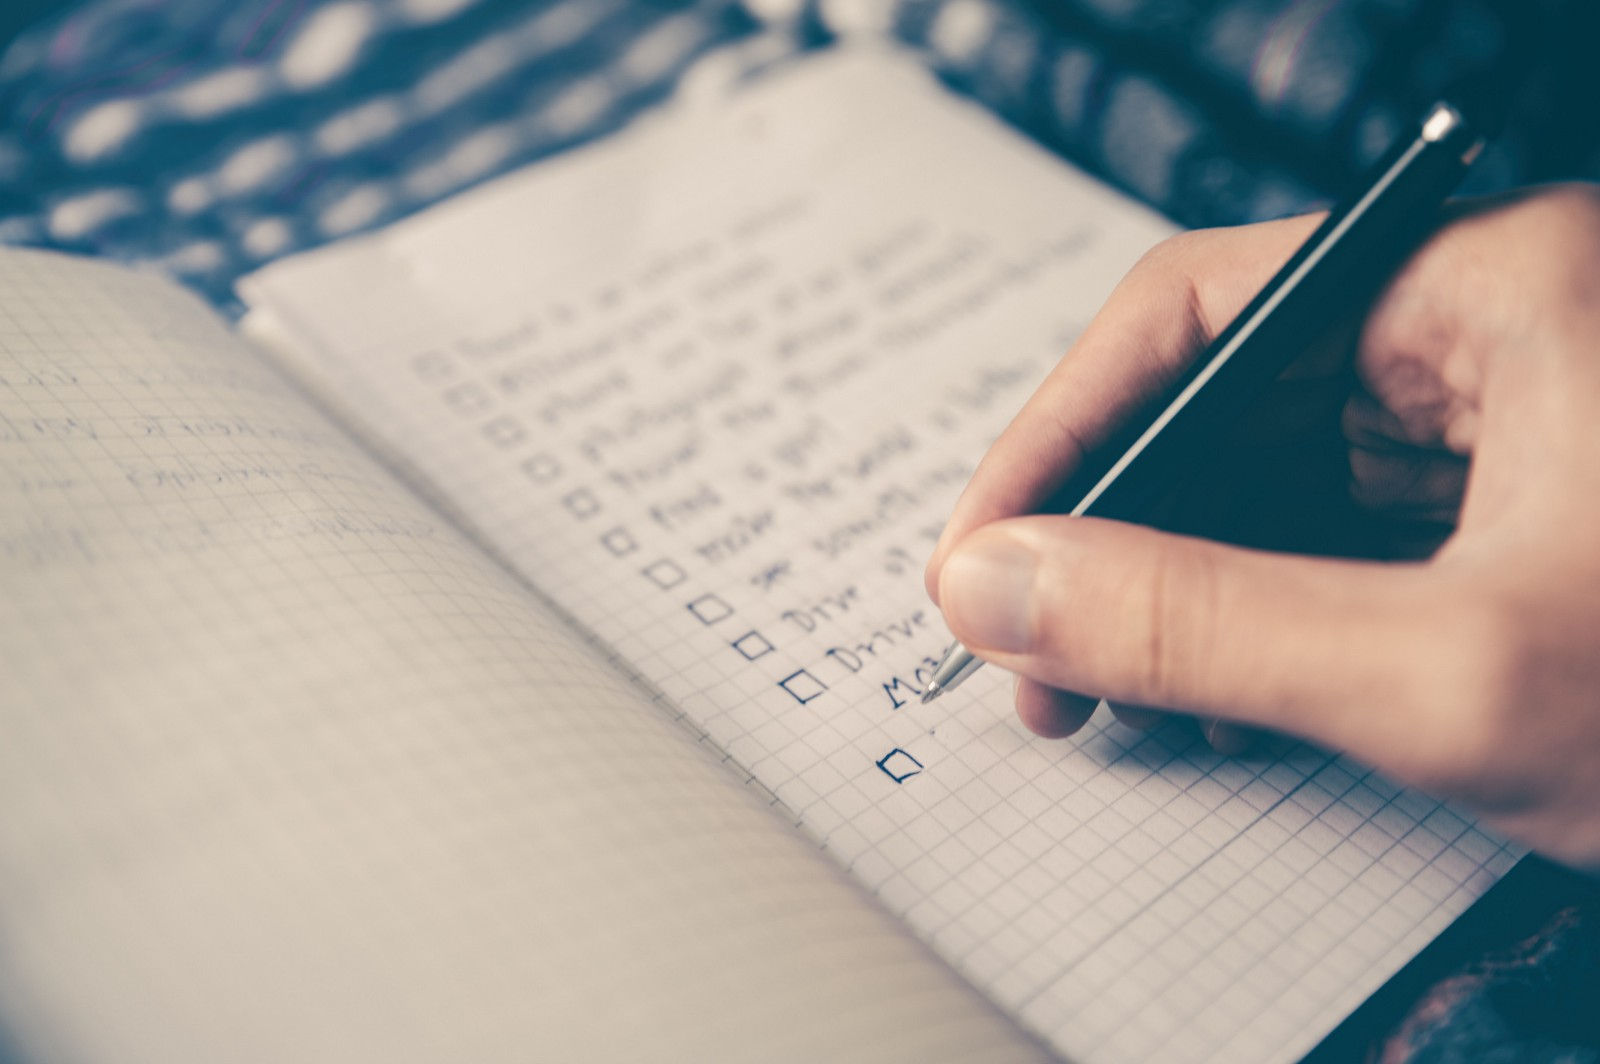 The Not-To-Do List: 9 Habits to Stop Now